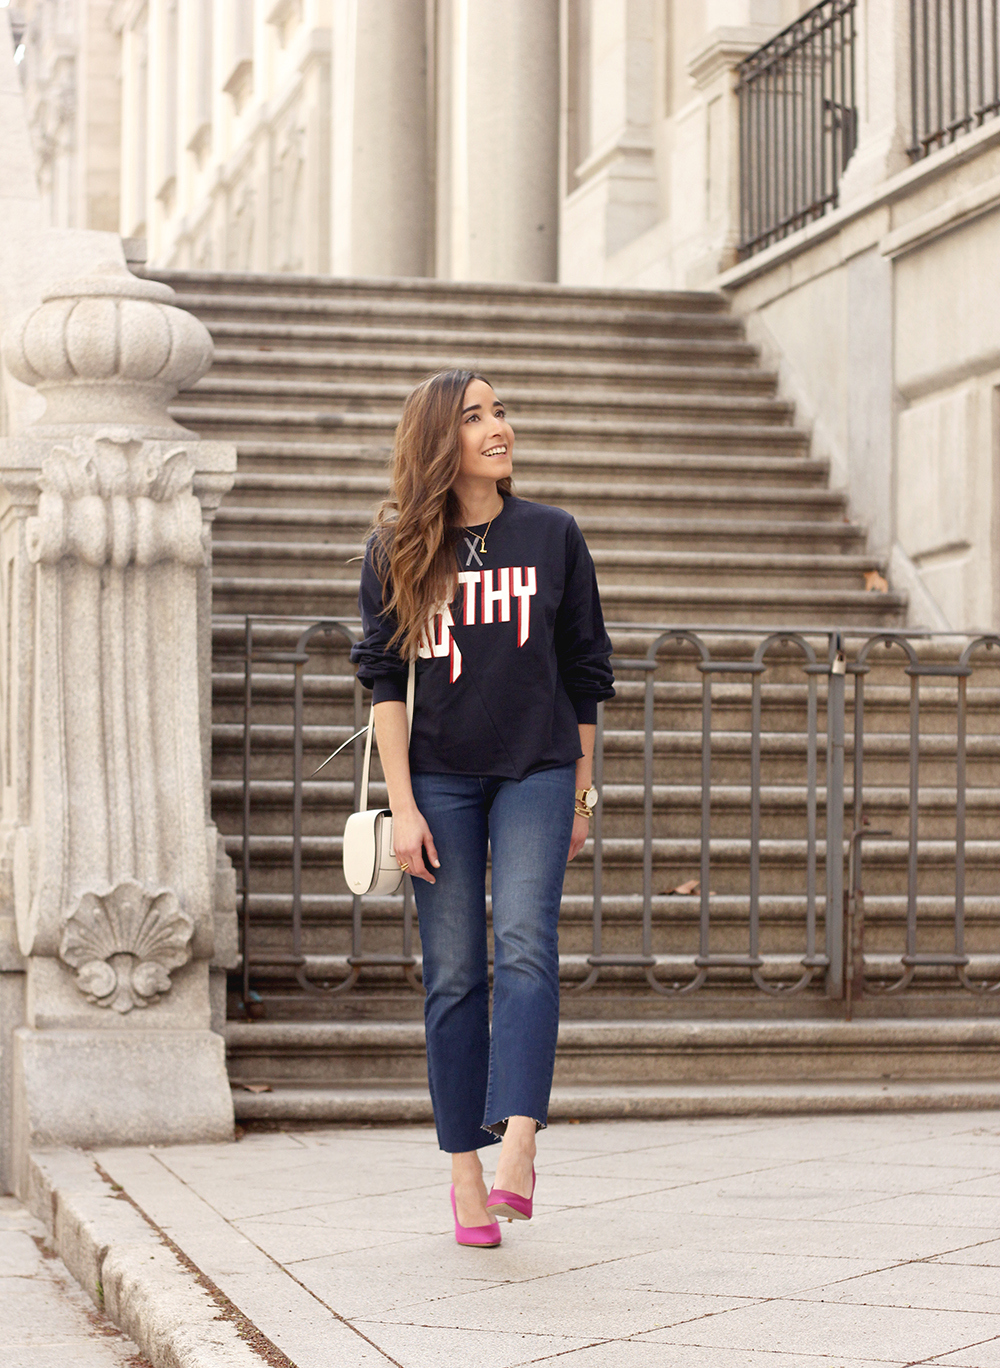 sweatshirt pink heels jeans find amazon fashion street style outfit 20191